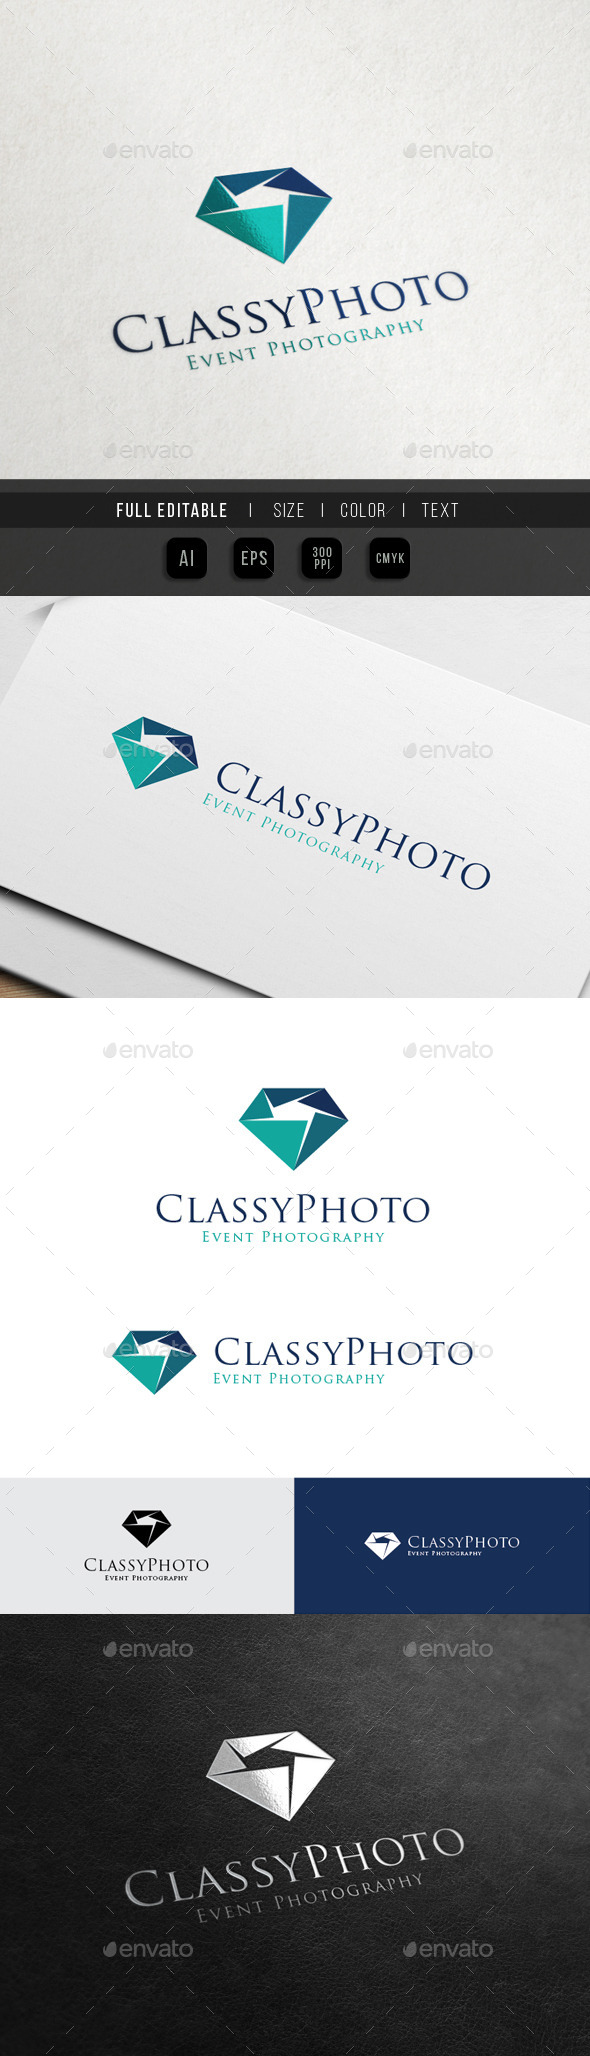 Event Photography - Jewel Camera  - Objects Logo Templates